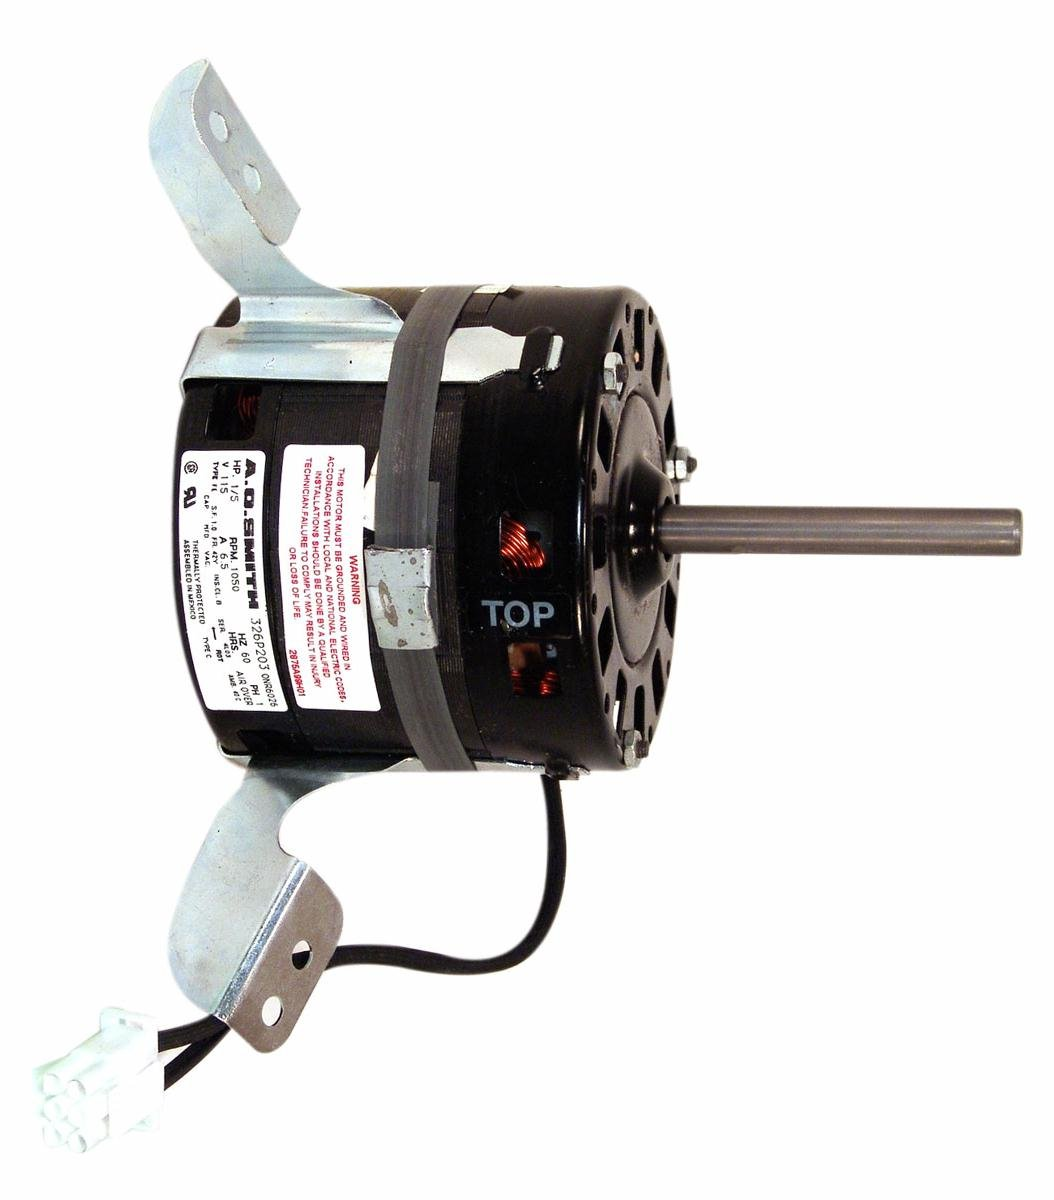 Ao Smith Onr6406 1 8 Hp 1050 Rpm Speed 42y Frame Ccwle 3 115 Volt Bloweer Motor Wiring Schematic Rotation 2 Inch By 7 Shaft Oem Direct Replacement Electric Fan Motors Amazon